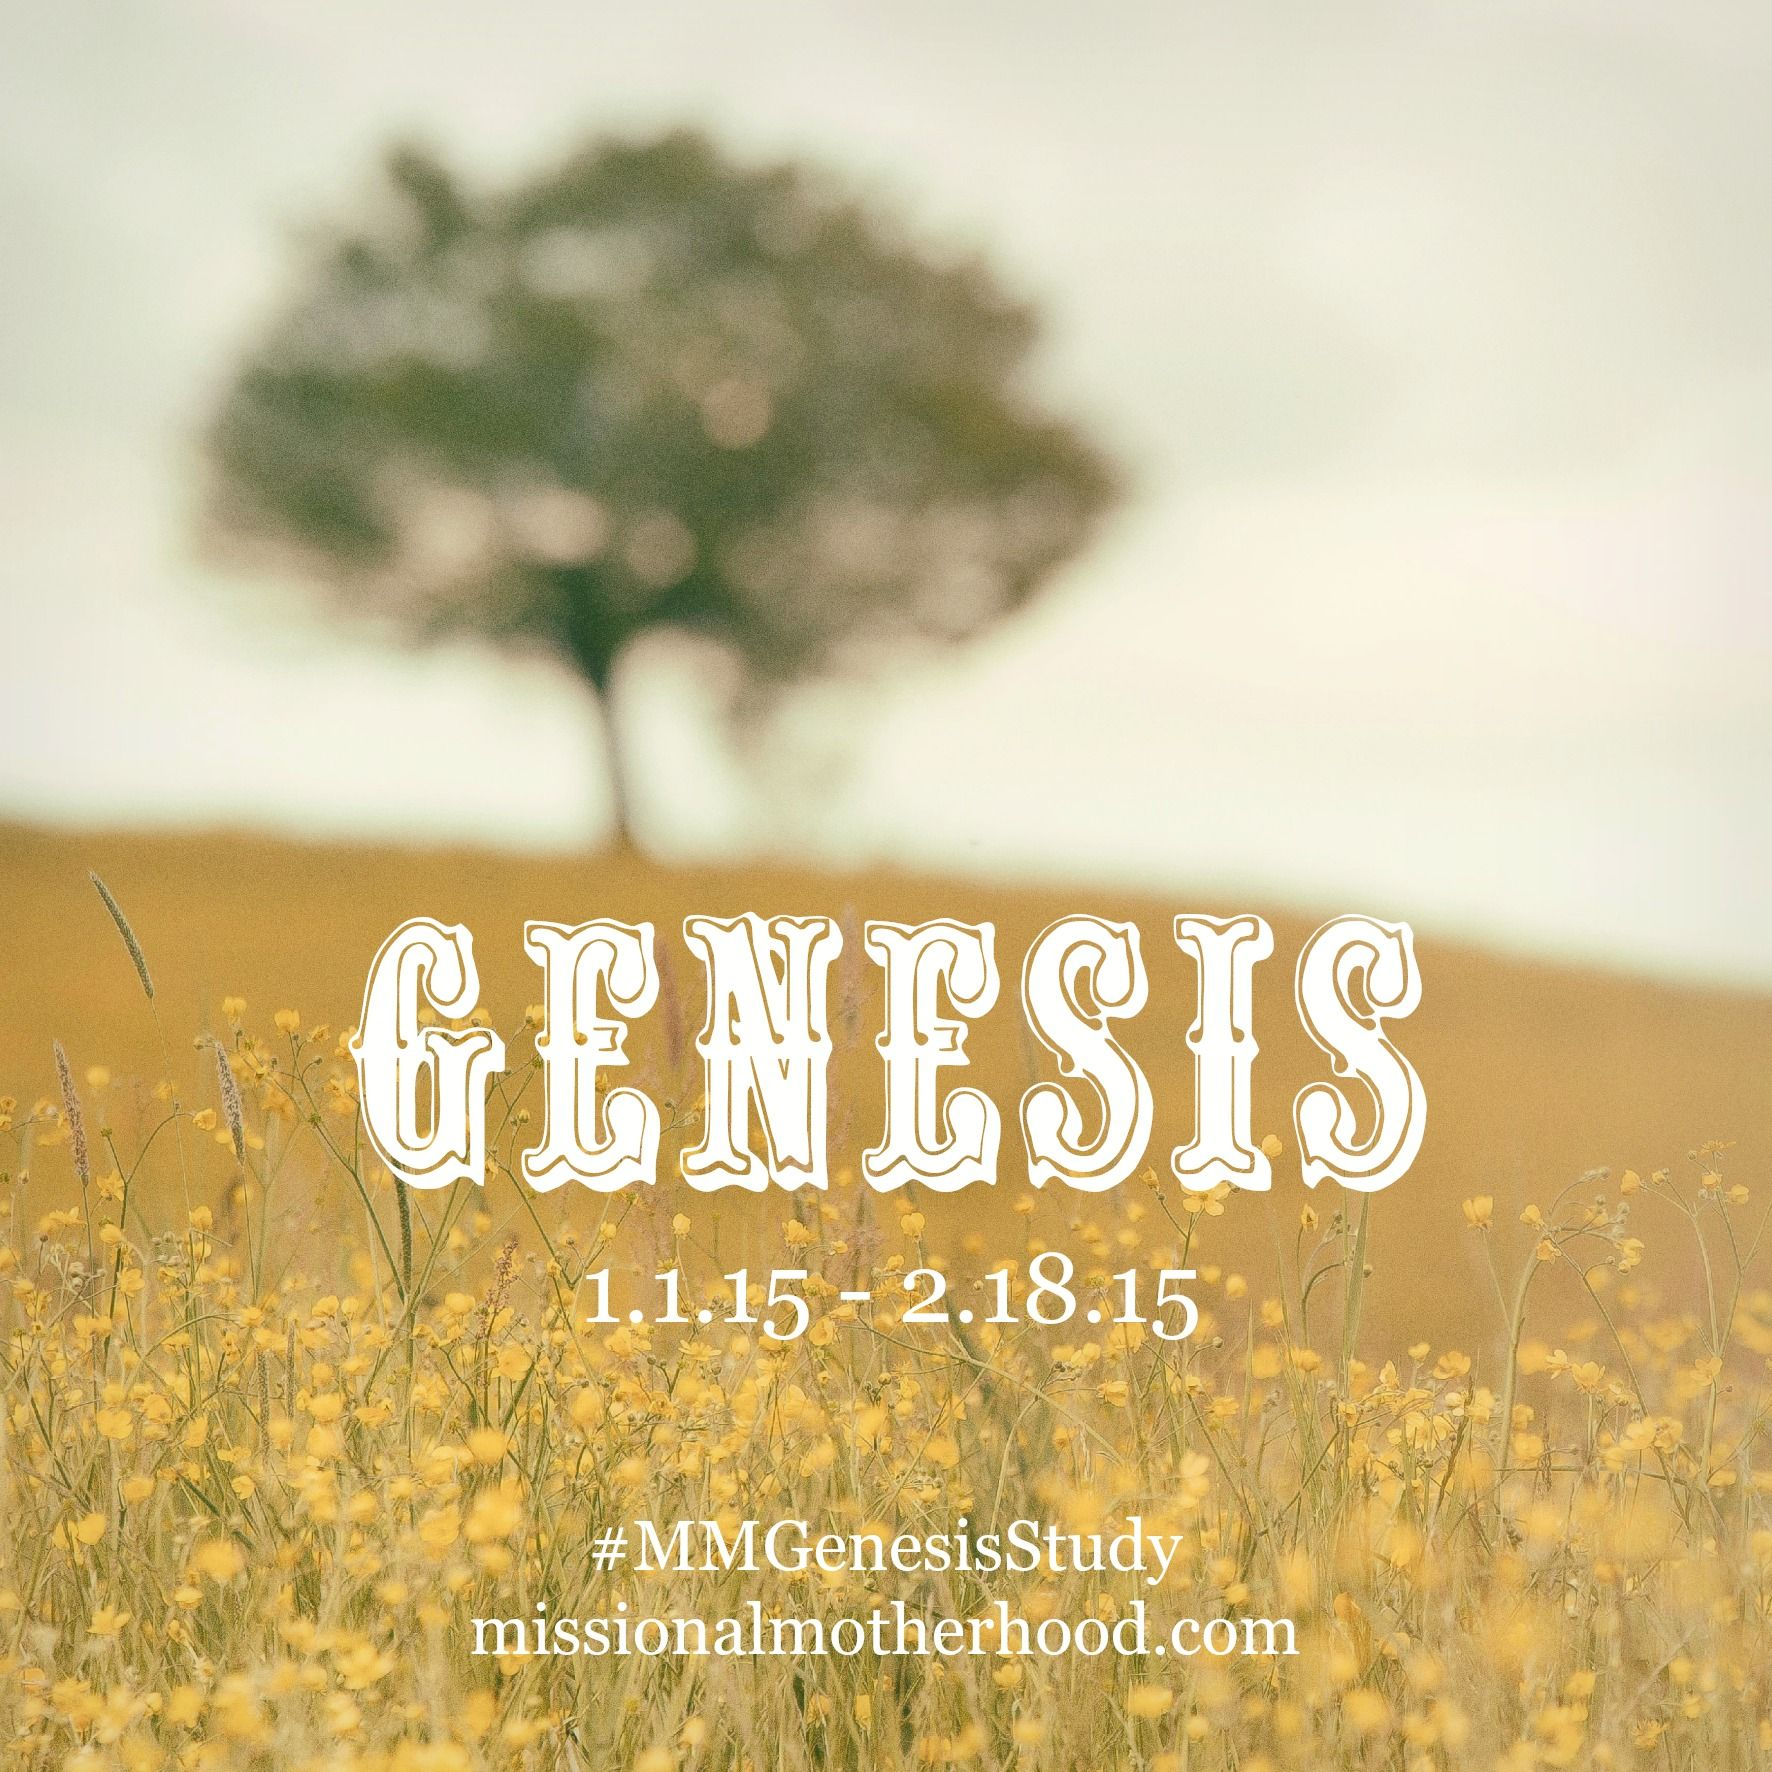 Mmgenesisstudy A Bible Study For The New Year Missionalmotherhood Com Is Spending Time In God S Word O Bible Study Genesis Bible Study Bible Study Journal